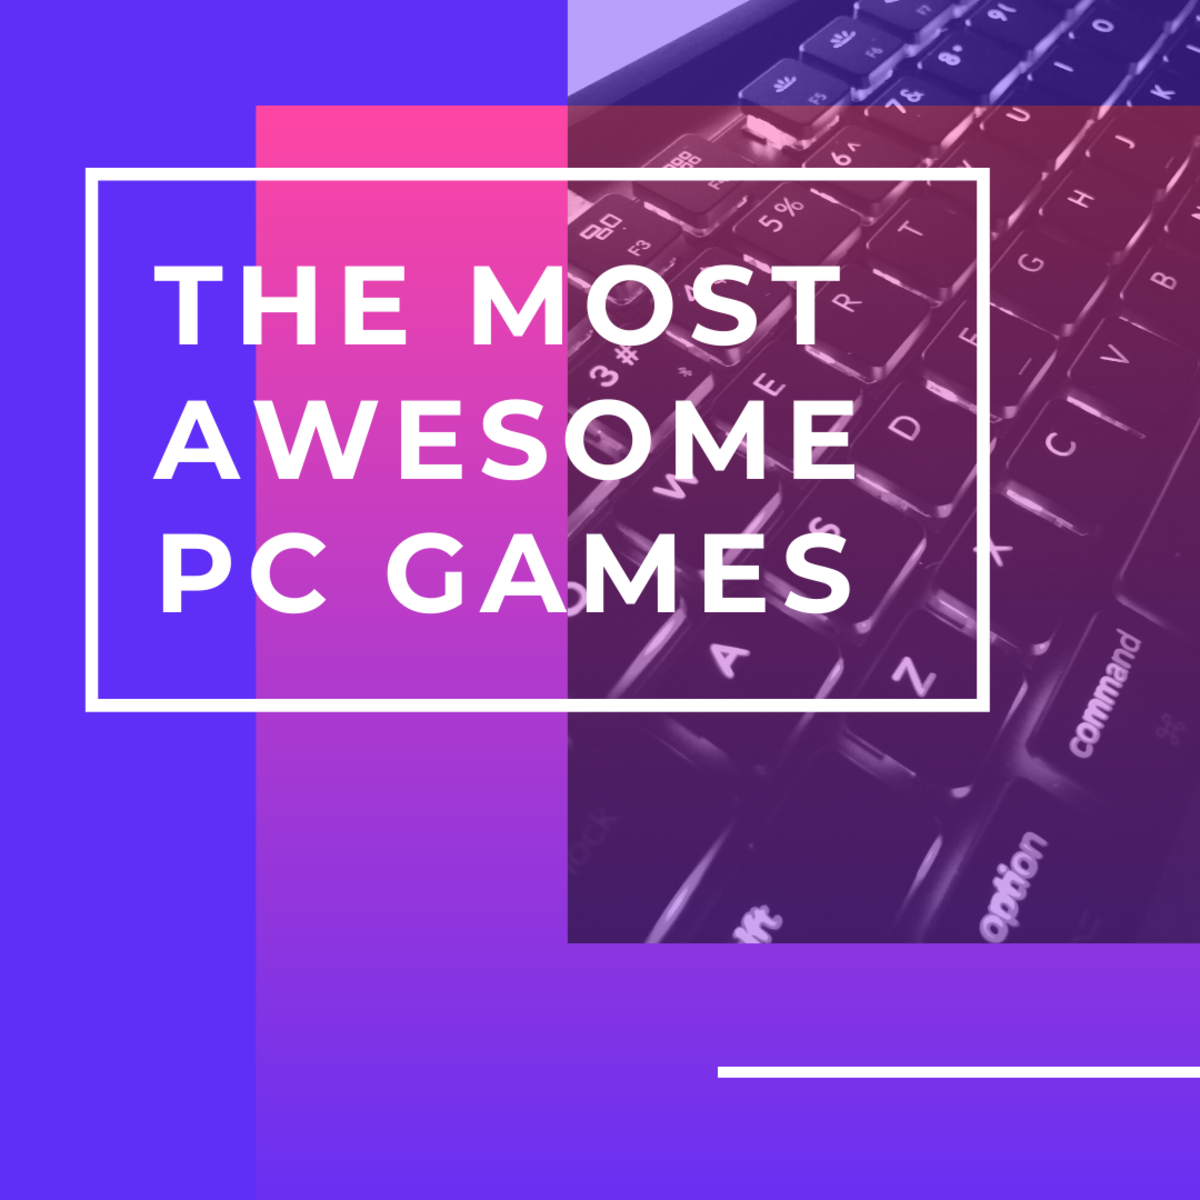 Read on for the 15 most awesome PC games out there!